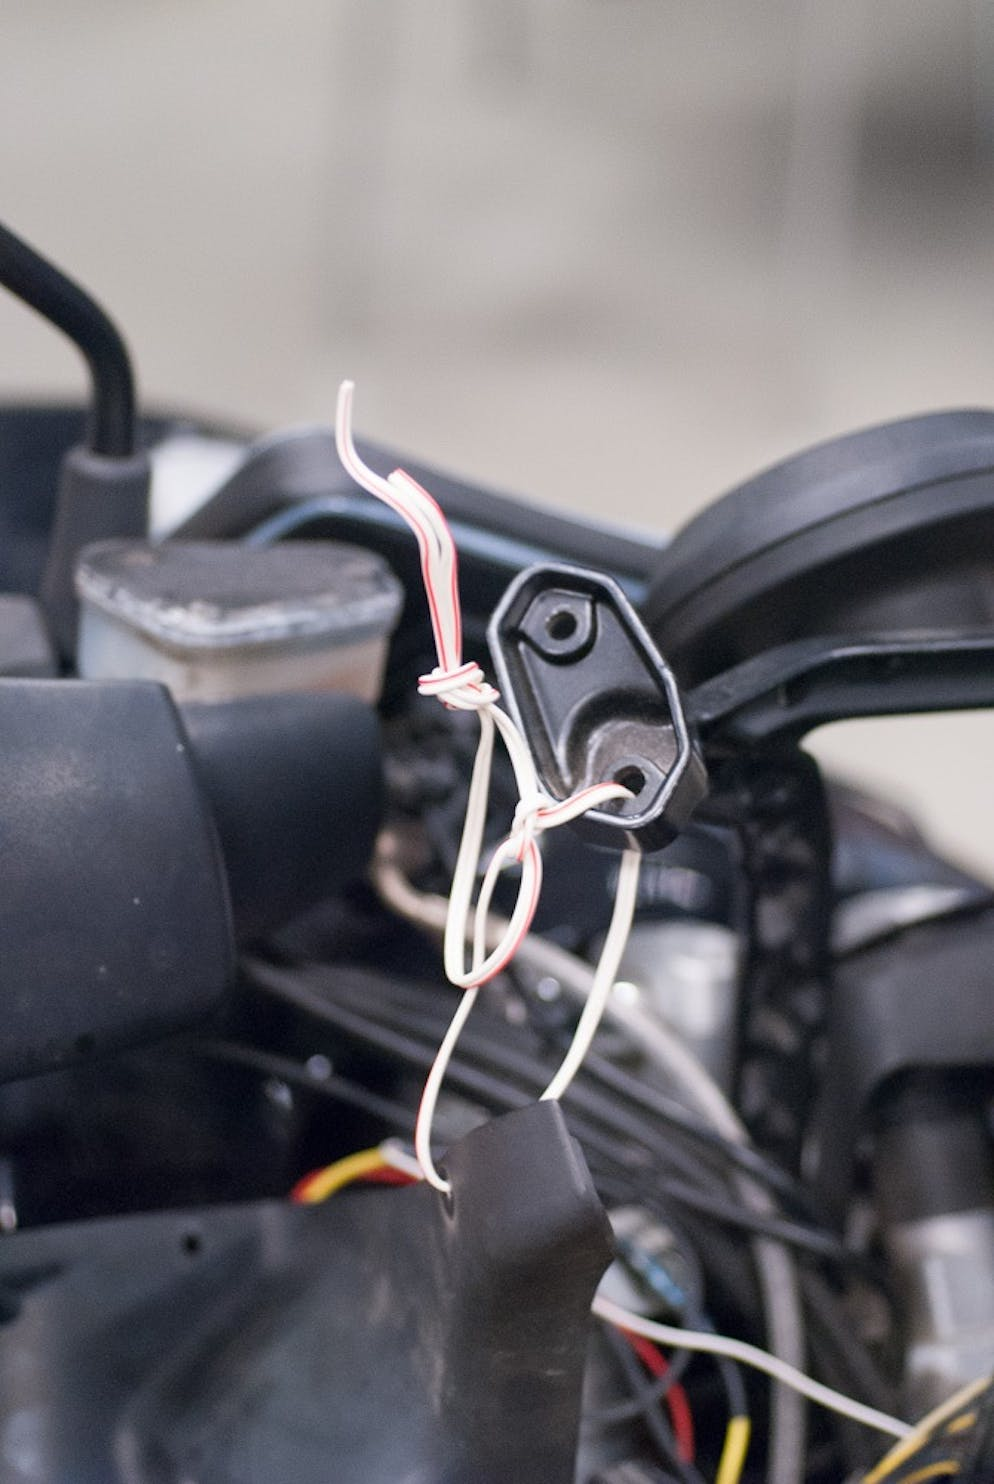 How To Tips For Installing Auxiliary Lights On Your Motorcycle Ktm Lc4 400 Wiring Diagram This Is The Only Acceptable Use Speaker Wire In A Installation Tying Fairings Safe Spot Quality Stranded Actual